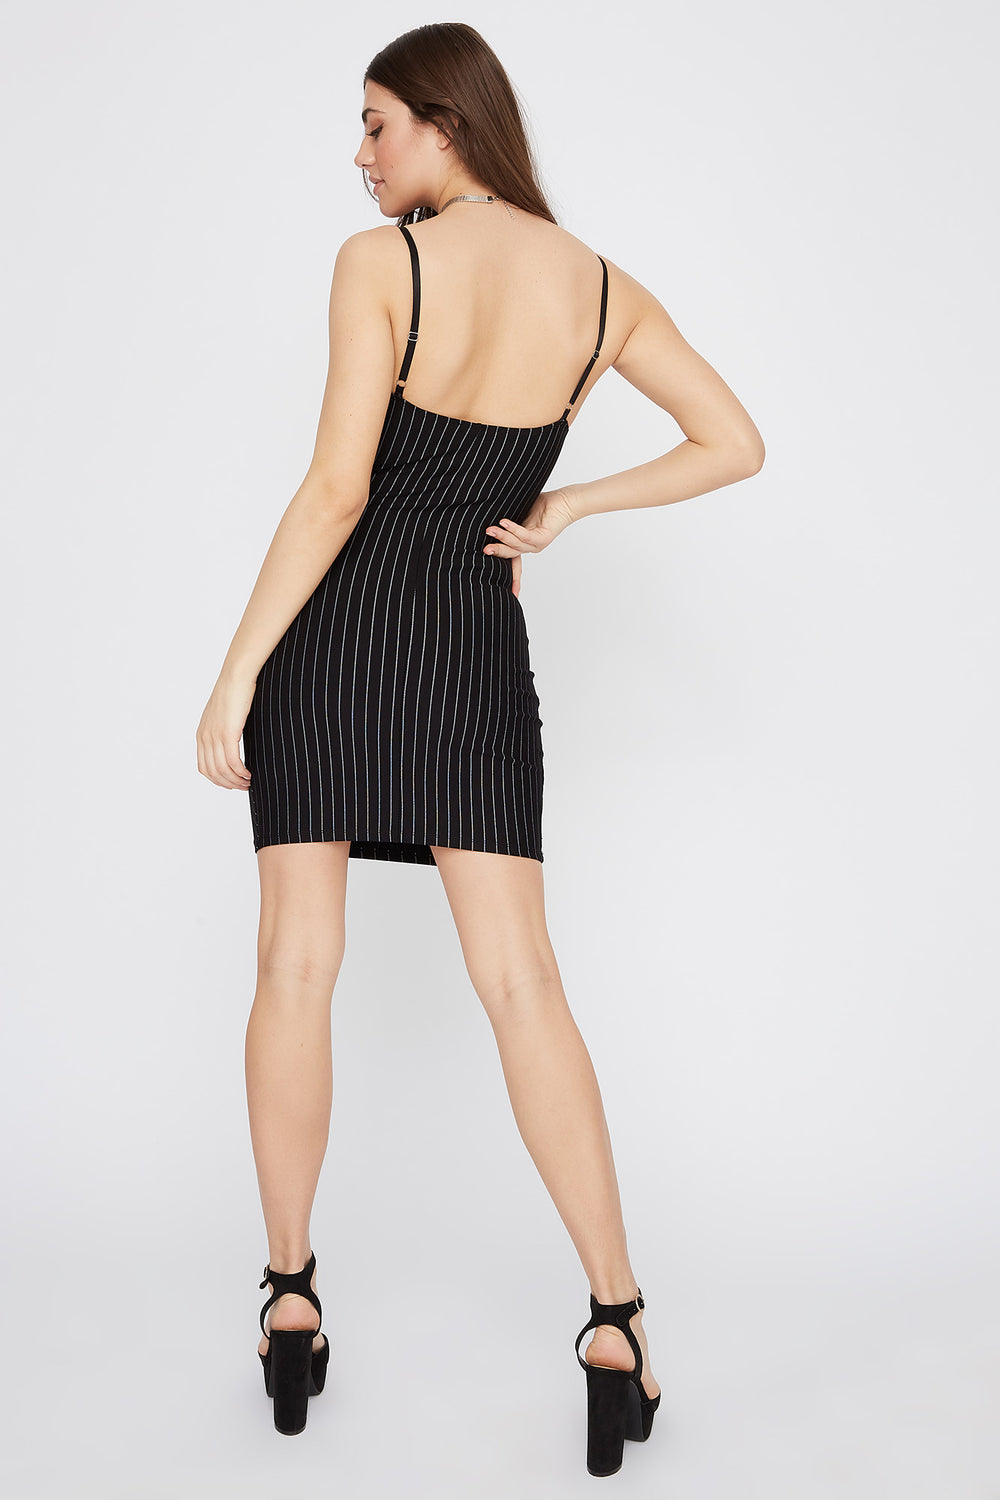 Pinstripe Bodycon Mini Dress Black